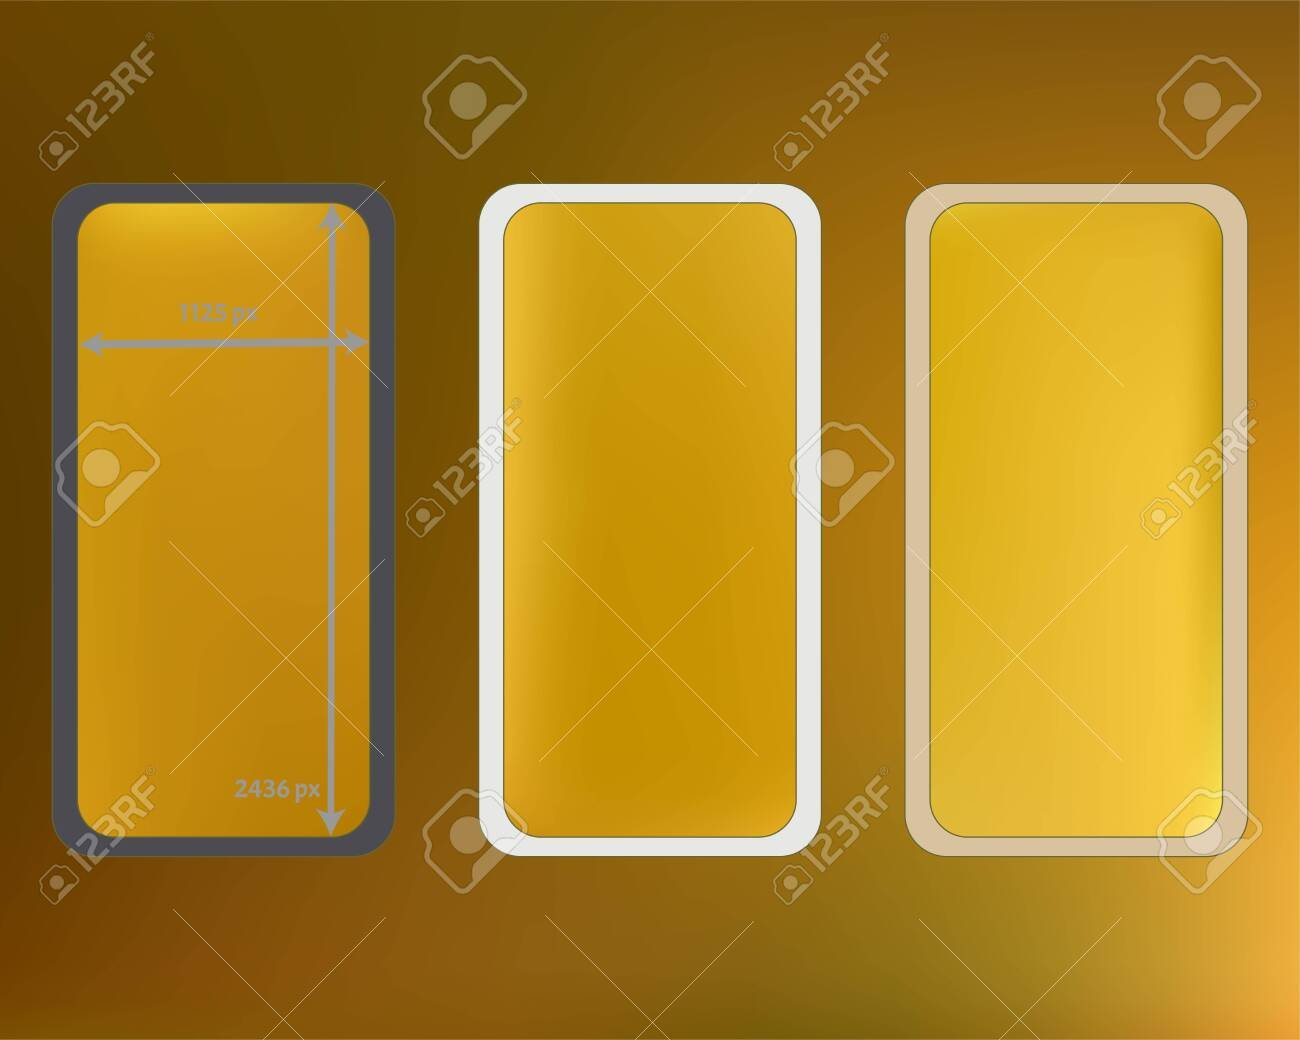 Mesh Gold Colored Phone Backgrounds Kit Crisp Separated Groups 1300x1040